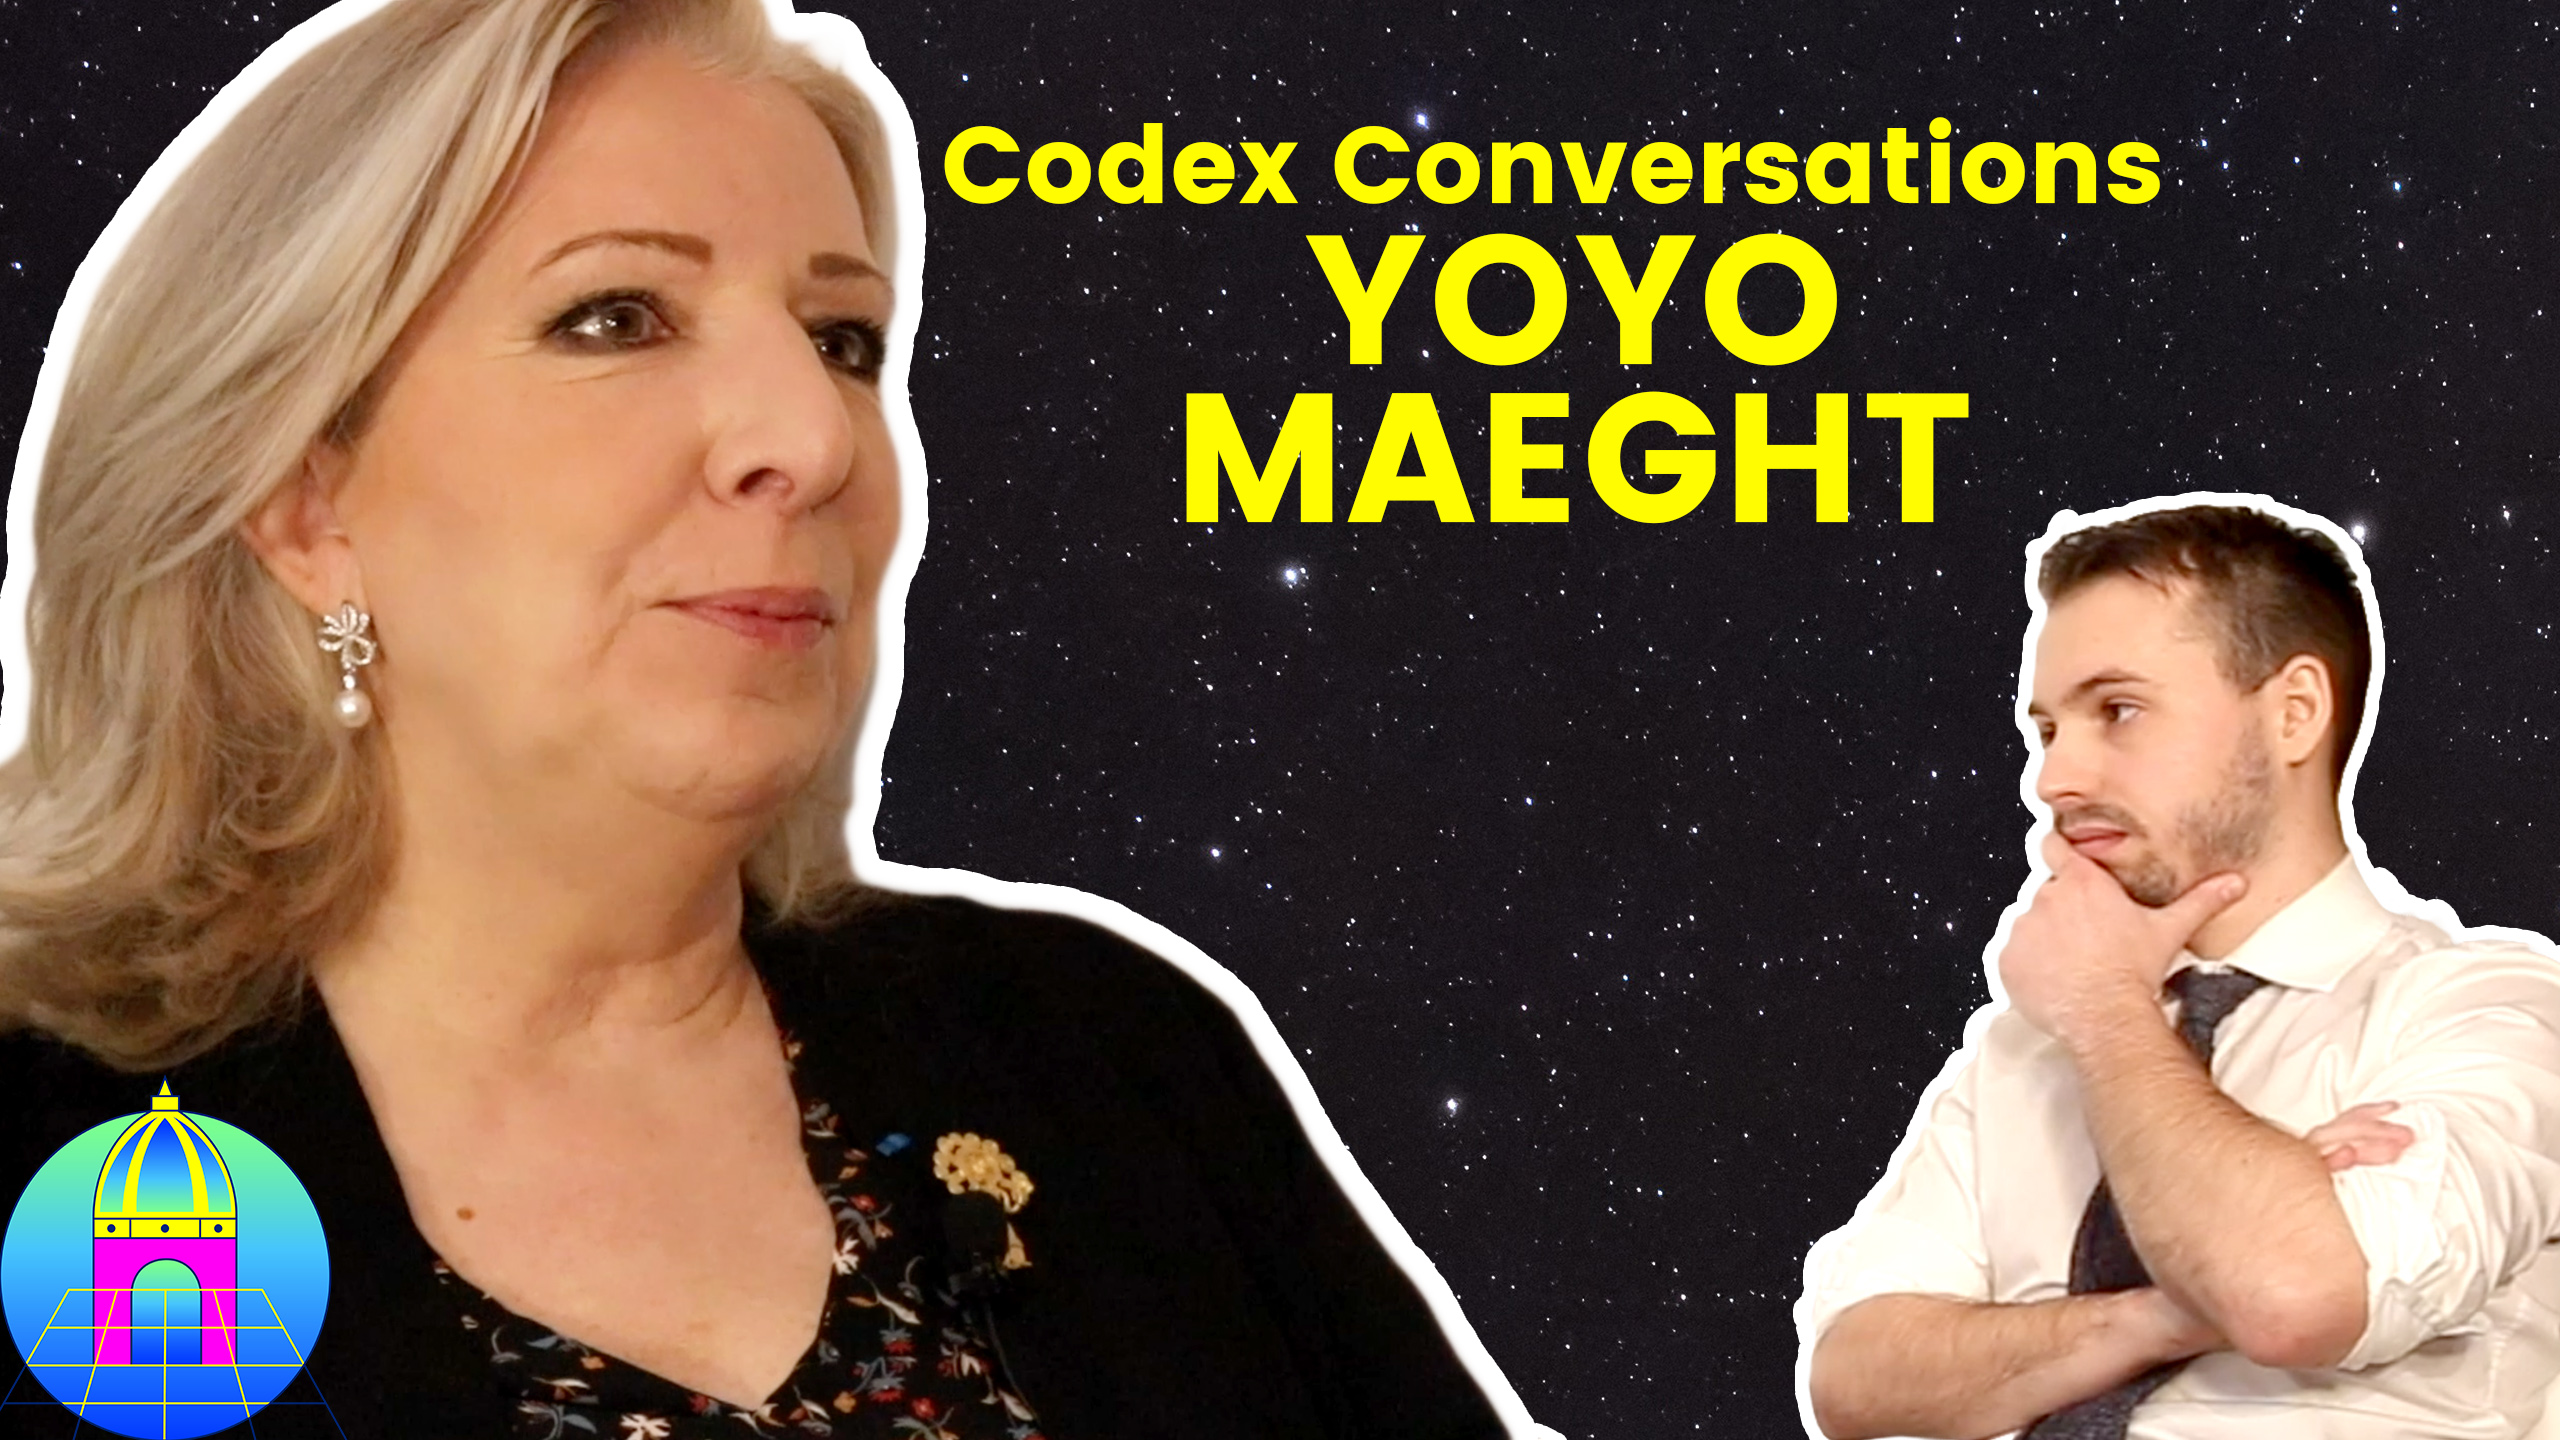 CODEX CONVERSATIONS 05 ✖️ YOYO MAEGHT